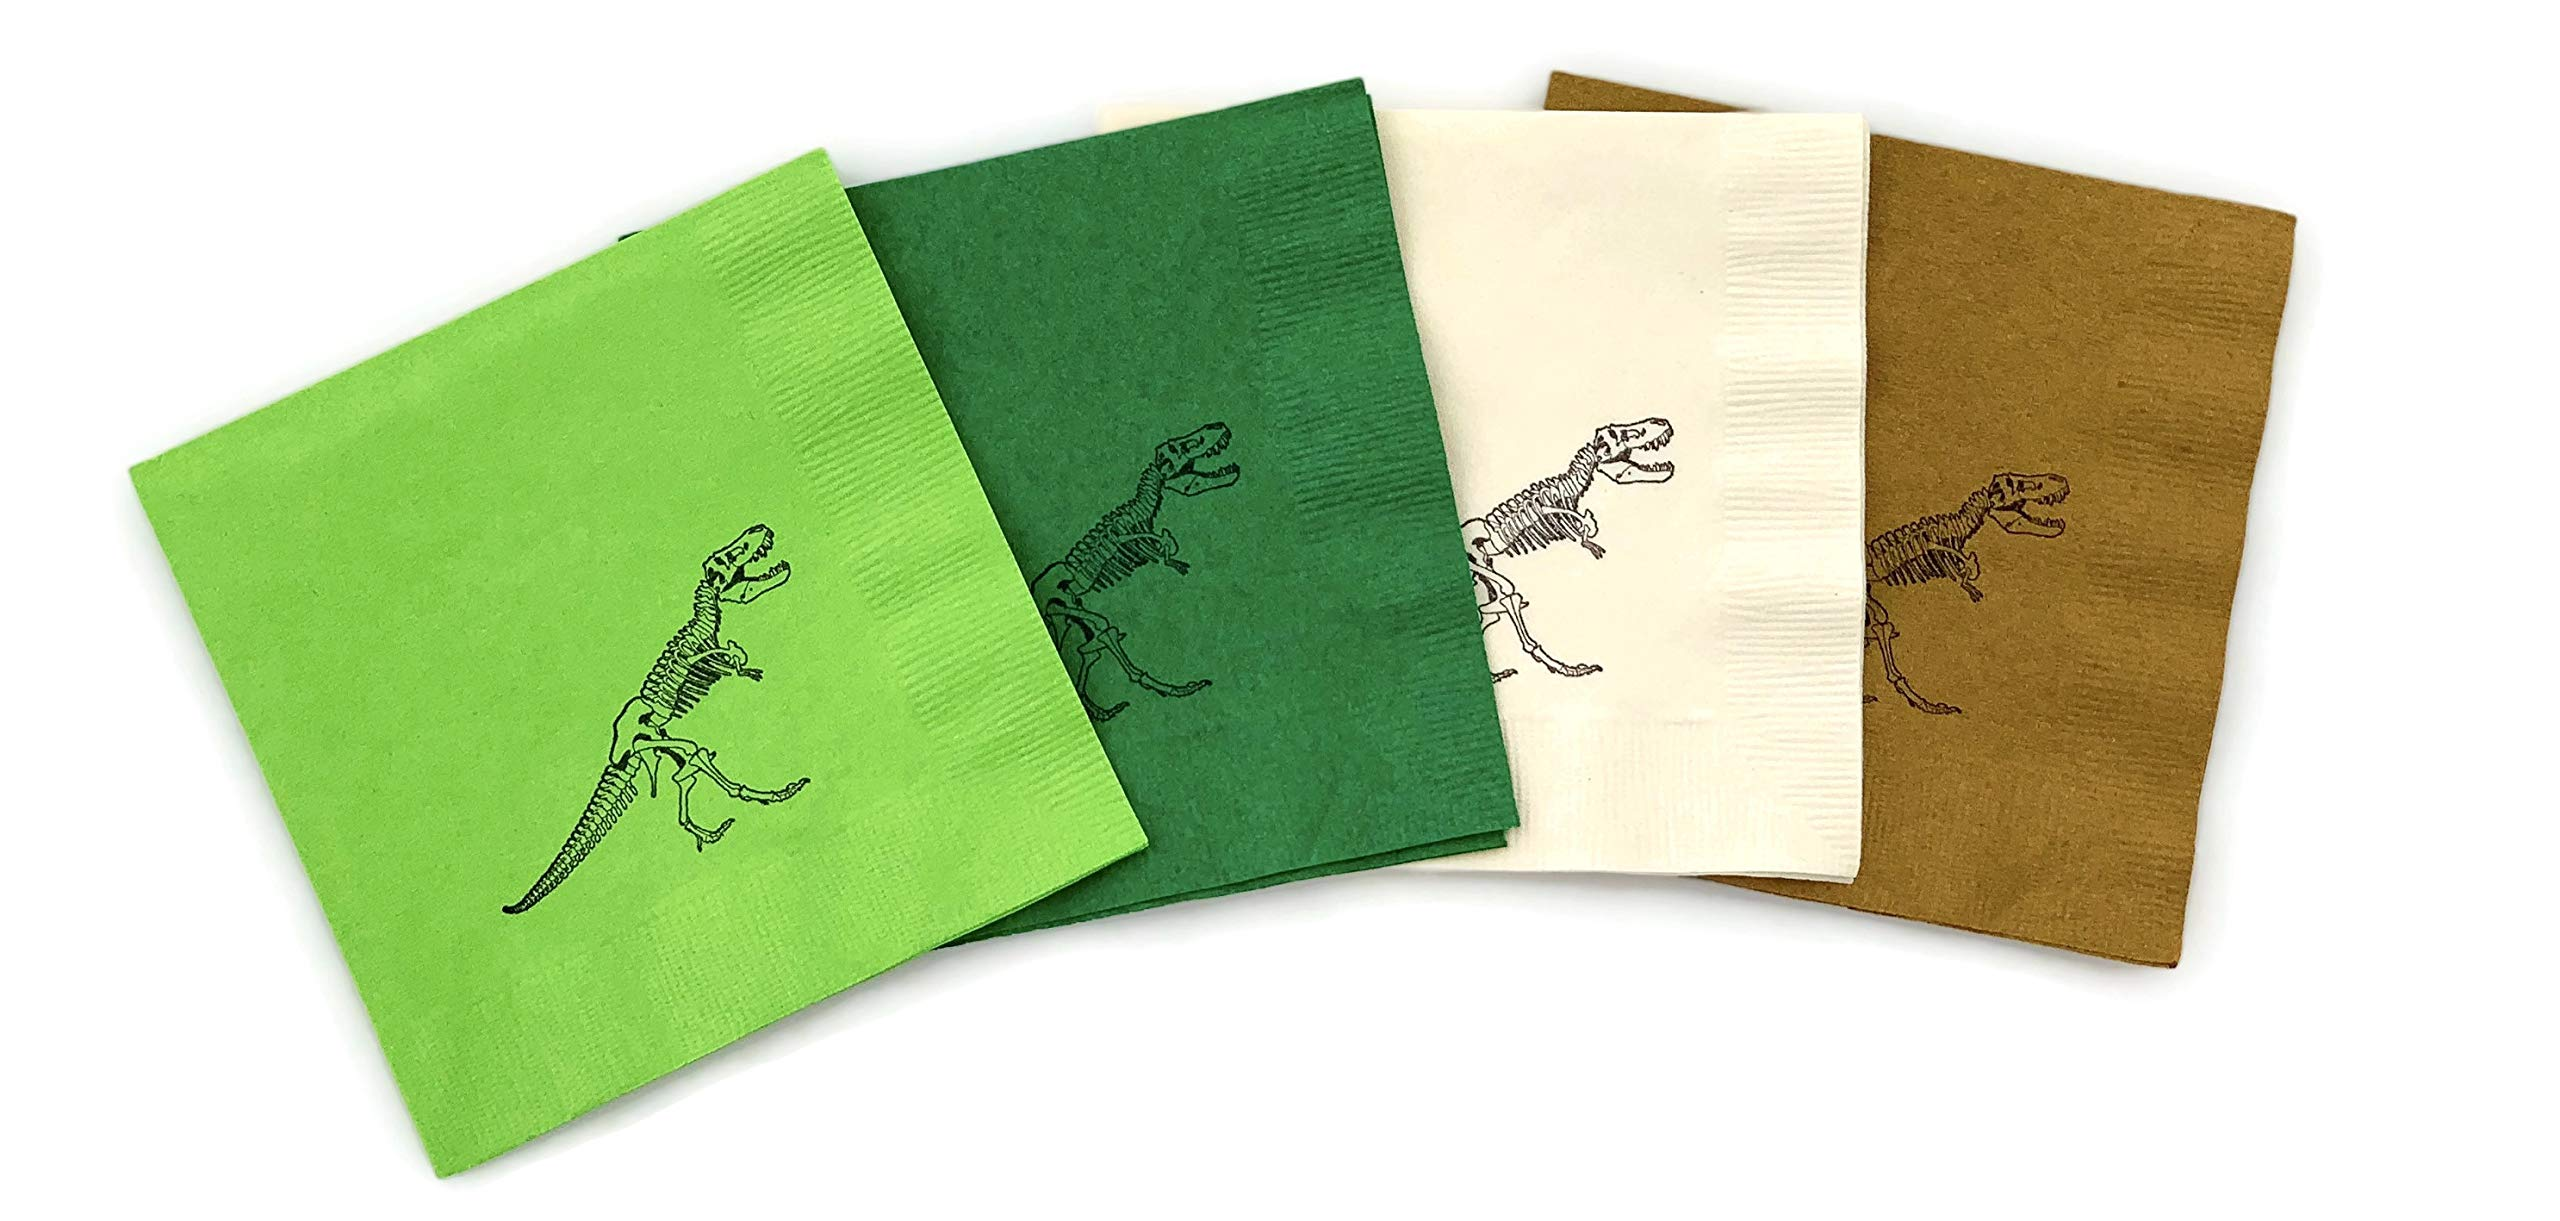 Dinosaur Napkins - Green Dinosaur Birthday Party Supplies for Kids 24 Count by Stesha Party